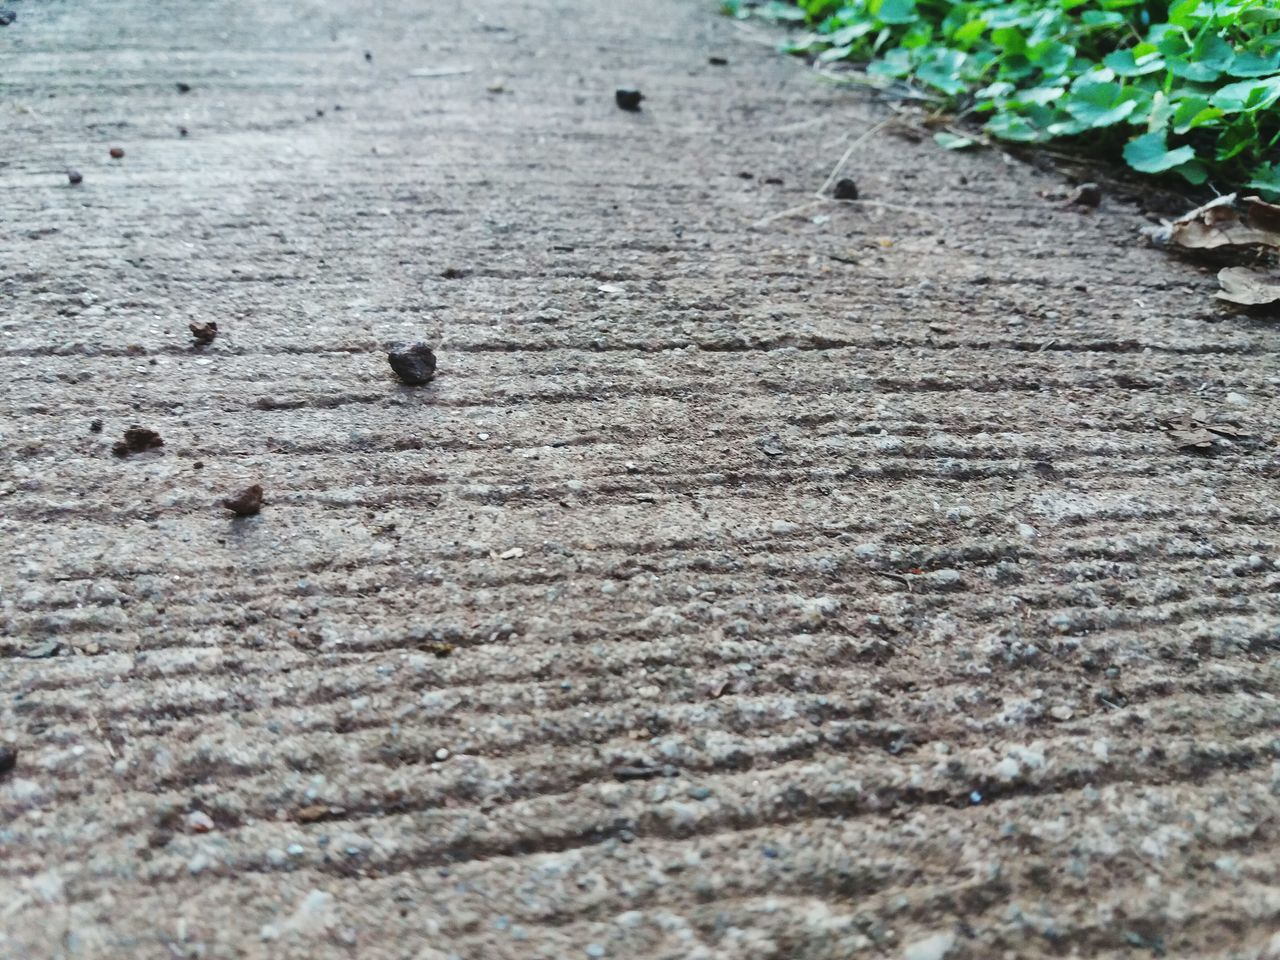 The Road. My Favorite Photo Close Up Cementery Concrete Floor Full Frame Uniqueness High Angle View Nature_collection Nature On Your Doorstep Nature Beauty Beautiful View No People Textured  Day Nature Outdoors Backgrounds Close-up Animal Themes Paw Print